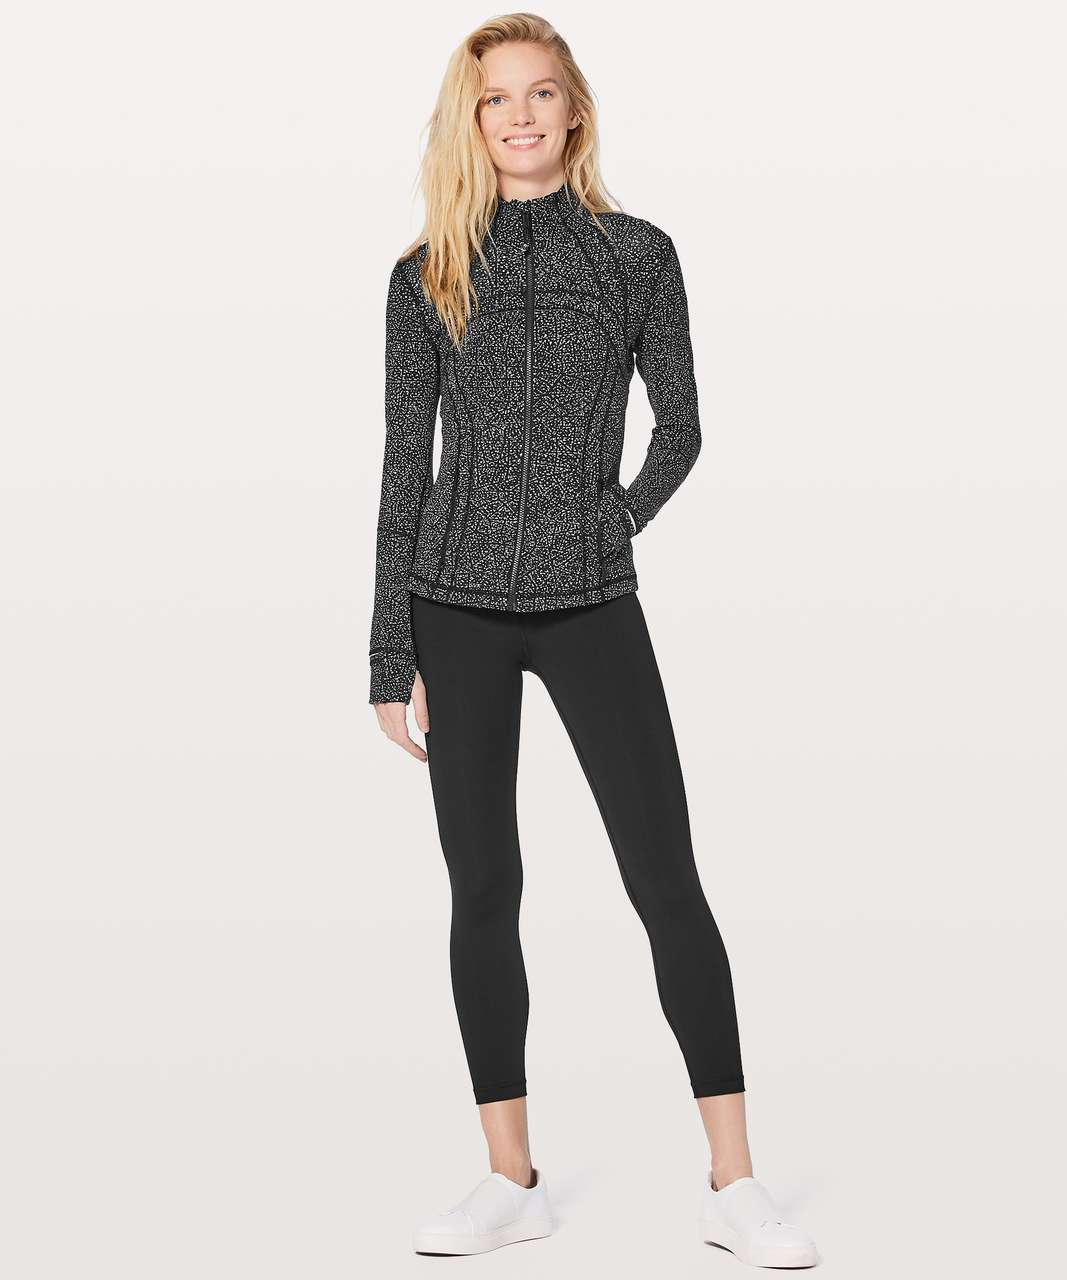 Lululemon Define Jacket - Night View White Black